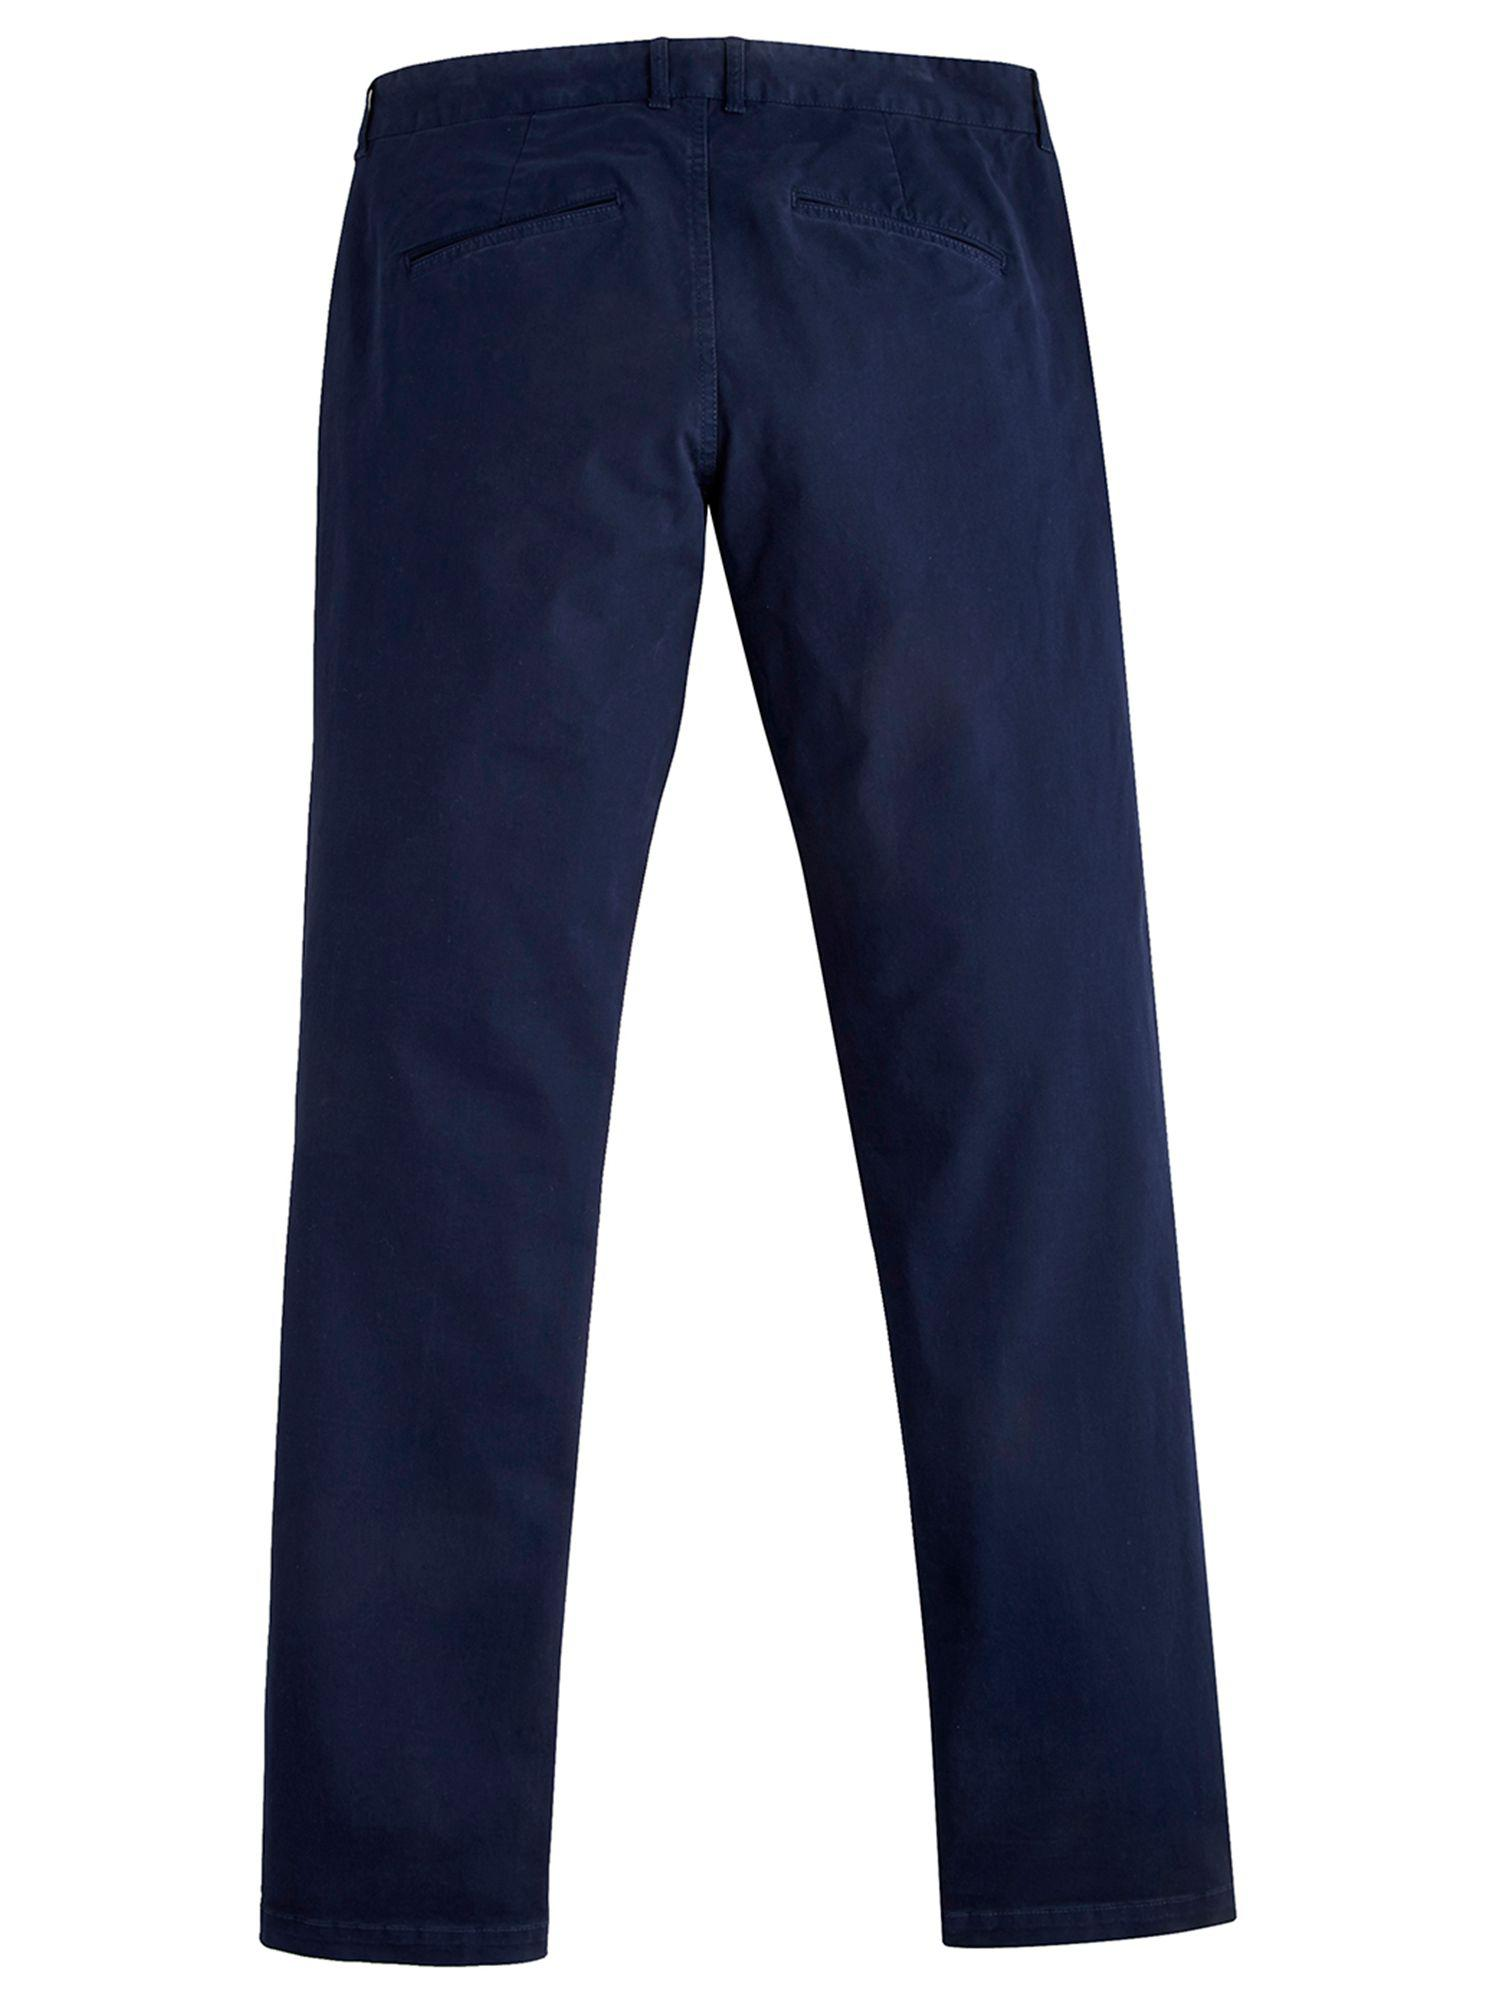 Joules Denim Thomas Chinos in French Navy (Blue) for Men